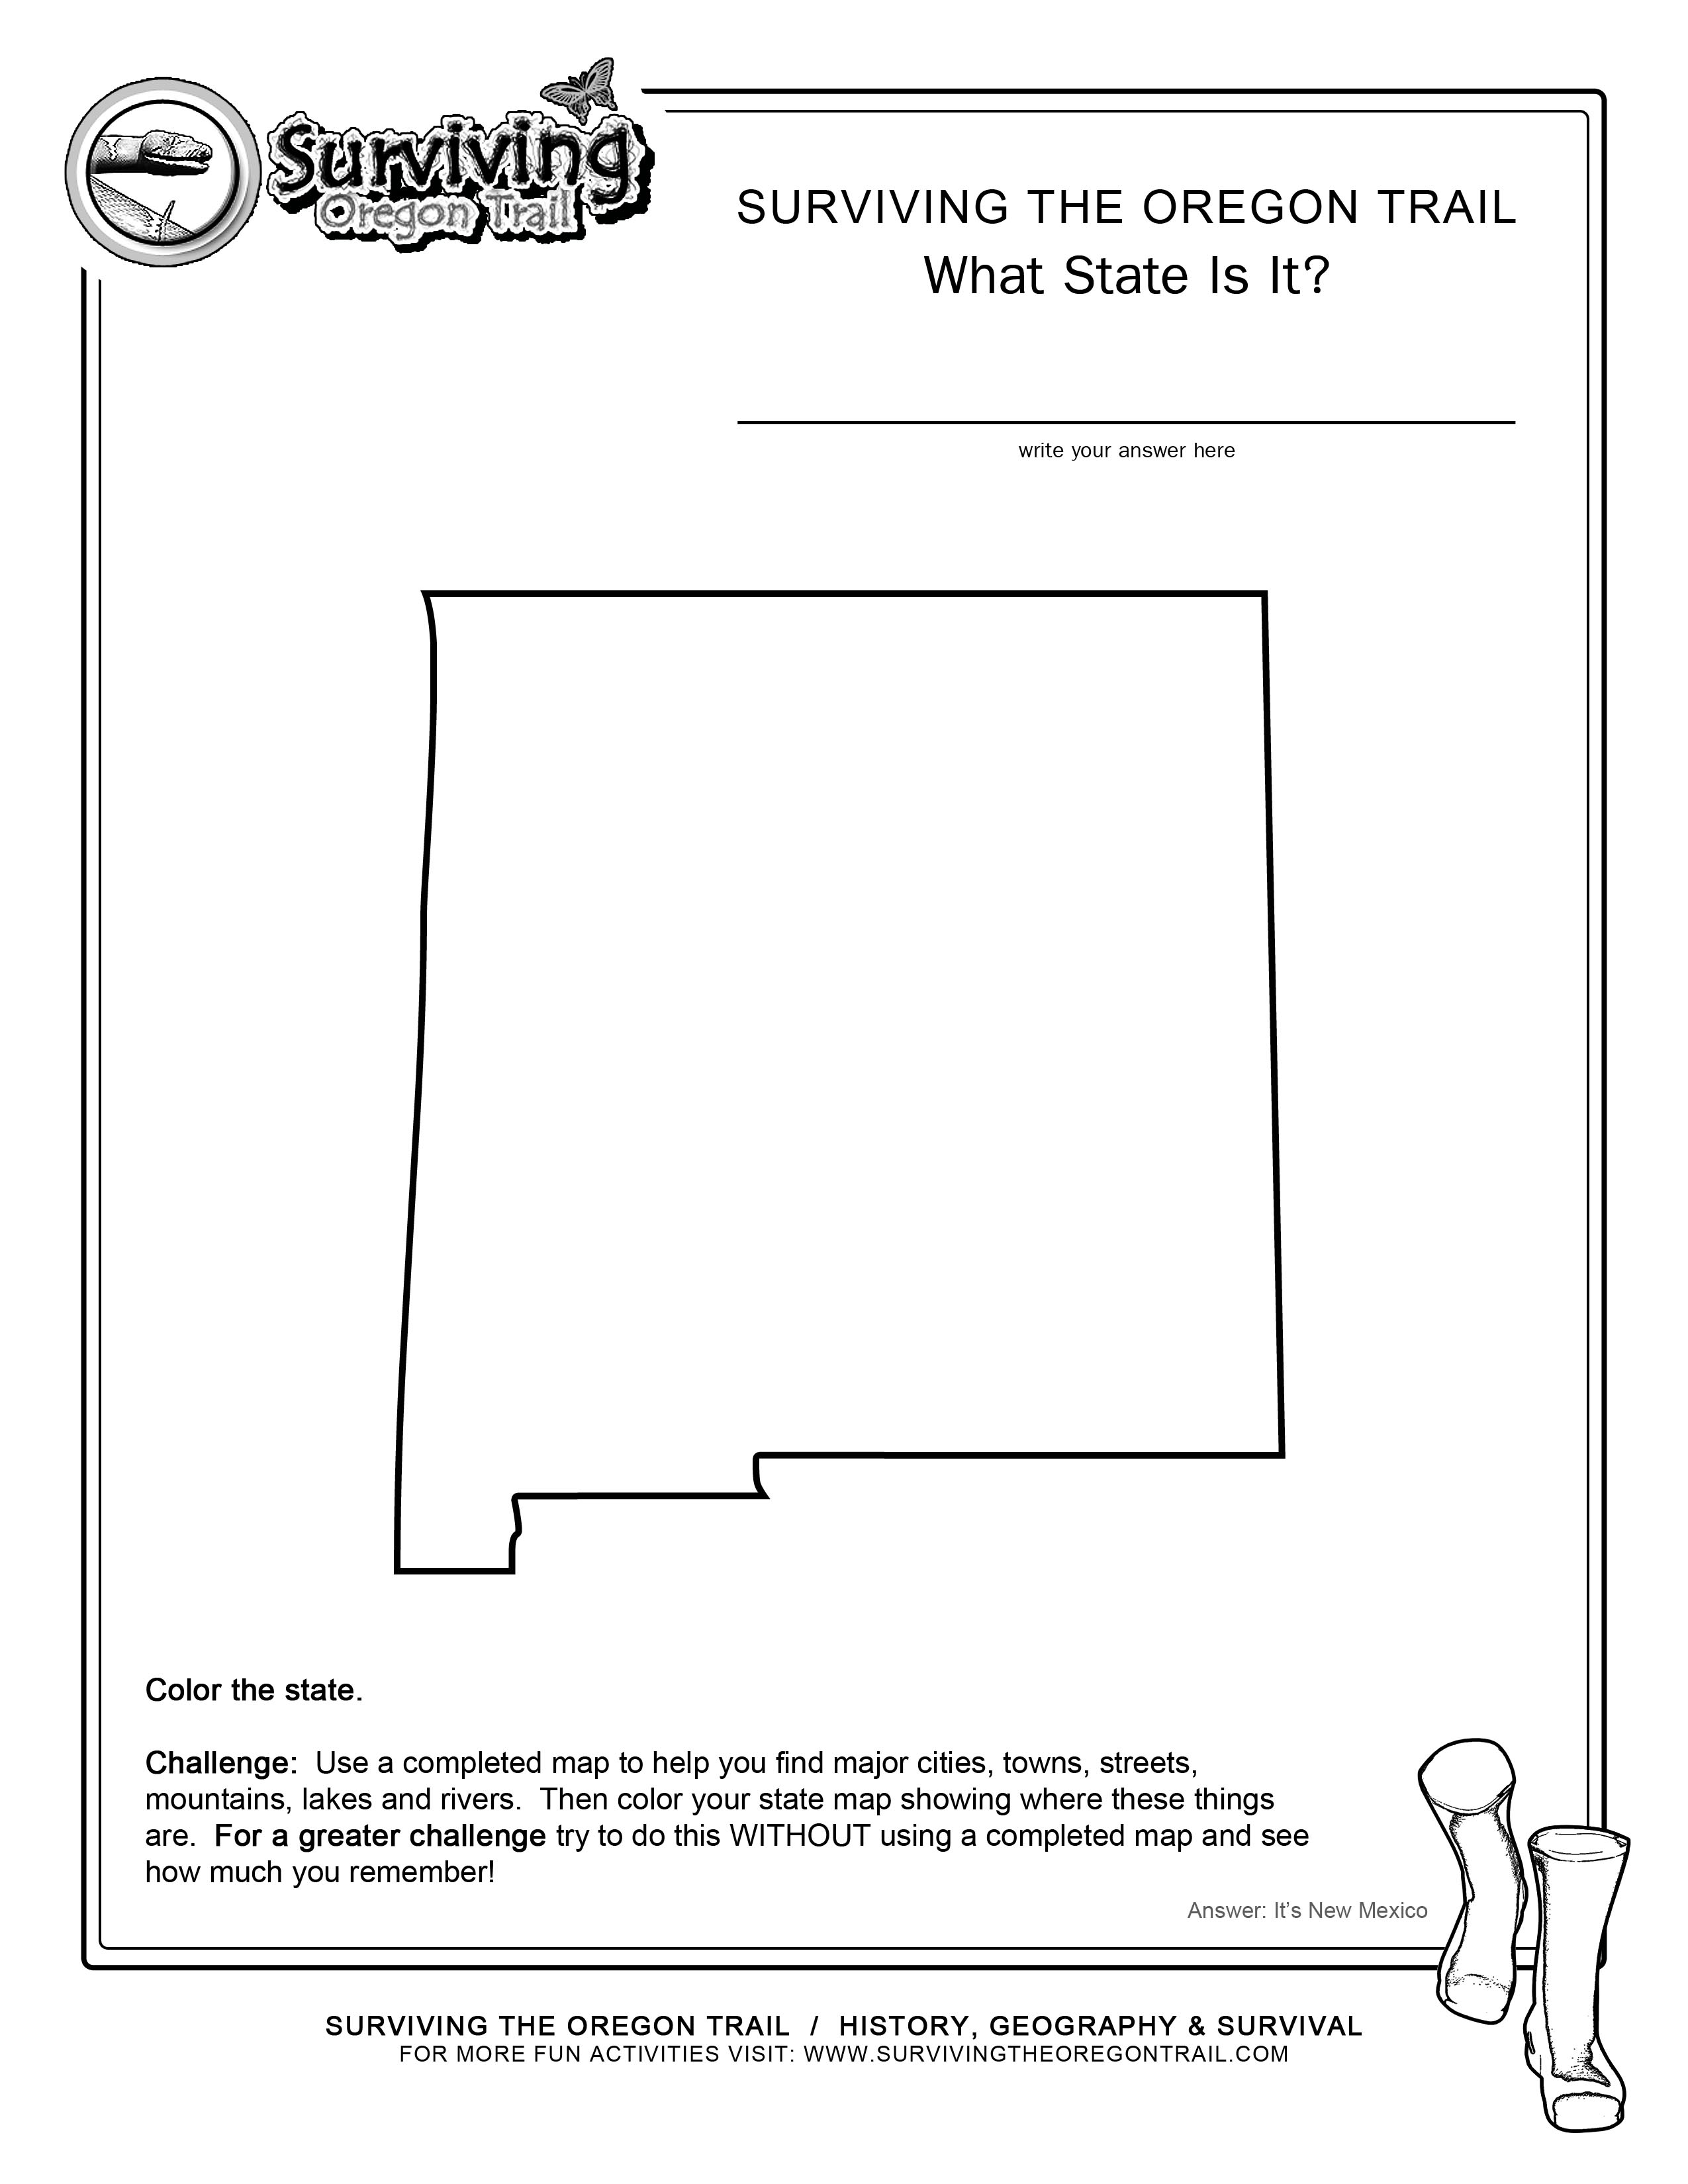 15 Best Images Of My Friend Worksheet Write About